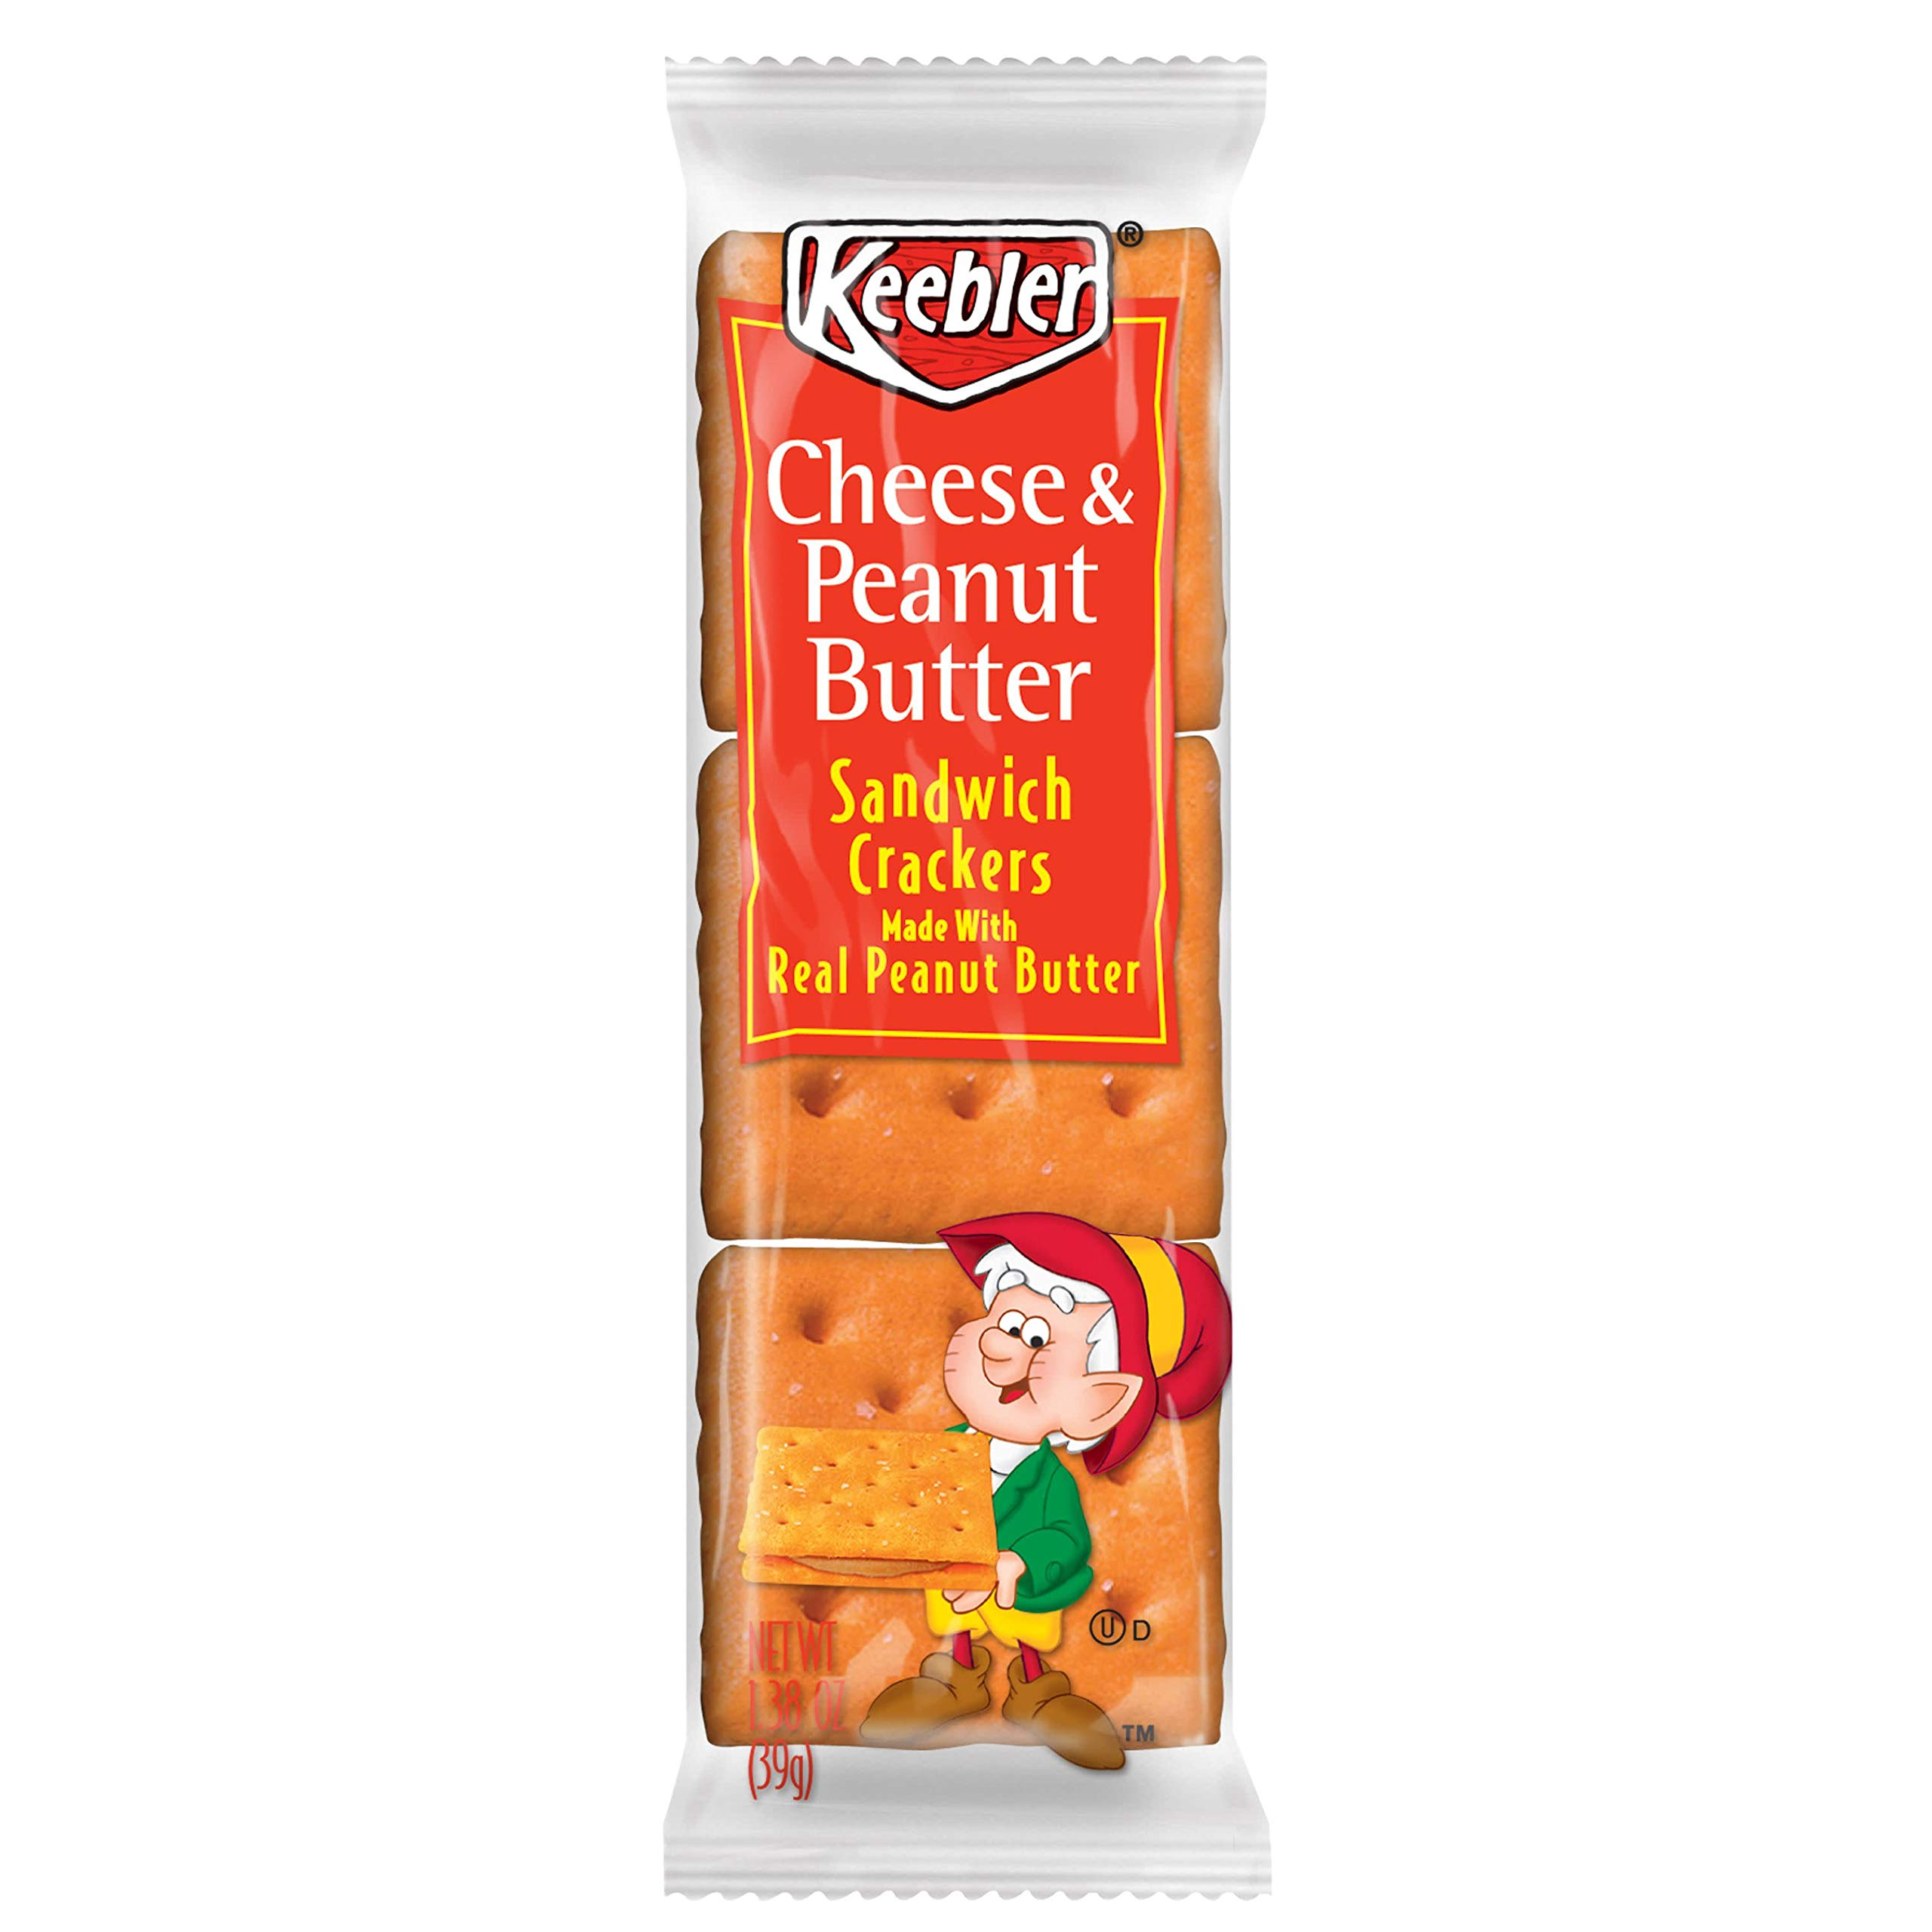 Keebler Cheese and Peanut Butter Sandwich Crackers, Single Serve, 1.38 oz Packages, 8 Count(Pack of 6) by Keebler Sandwich Crackers (Image #7)